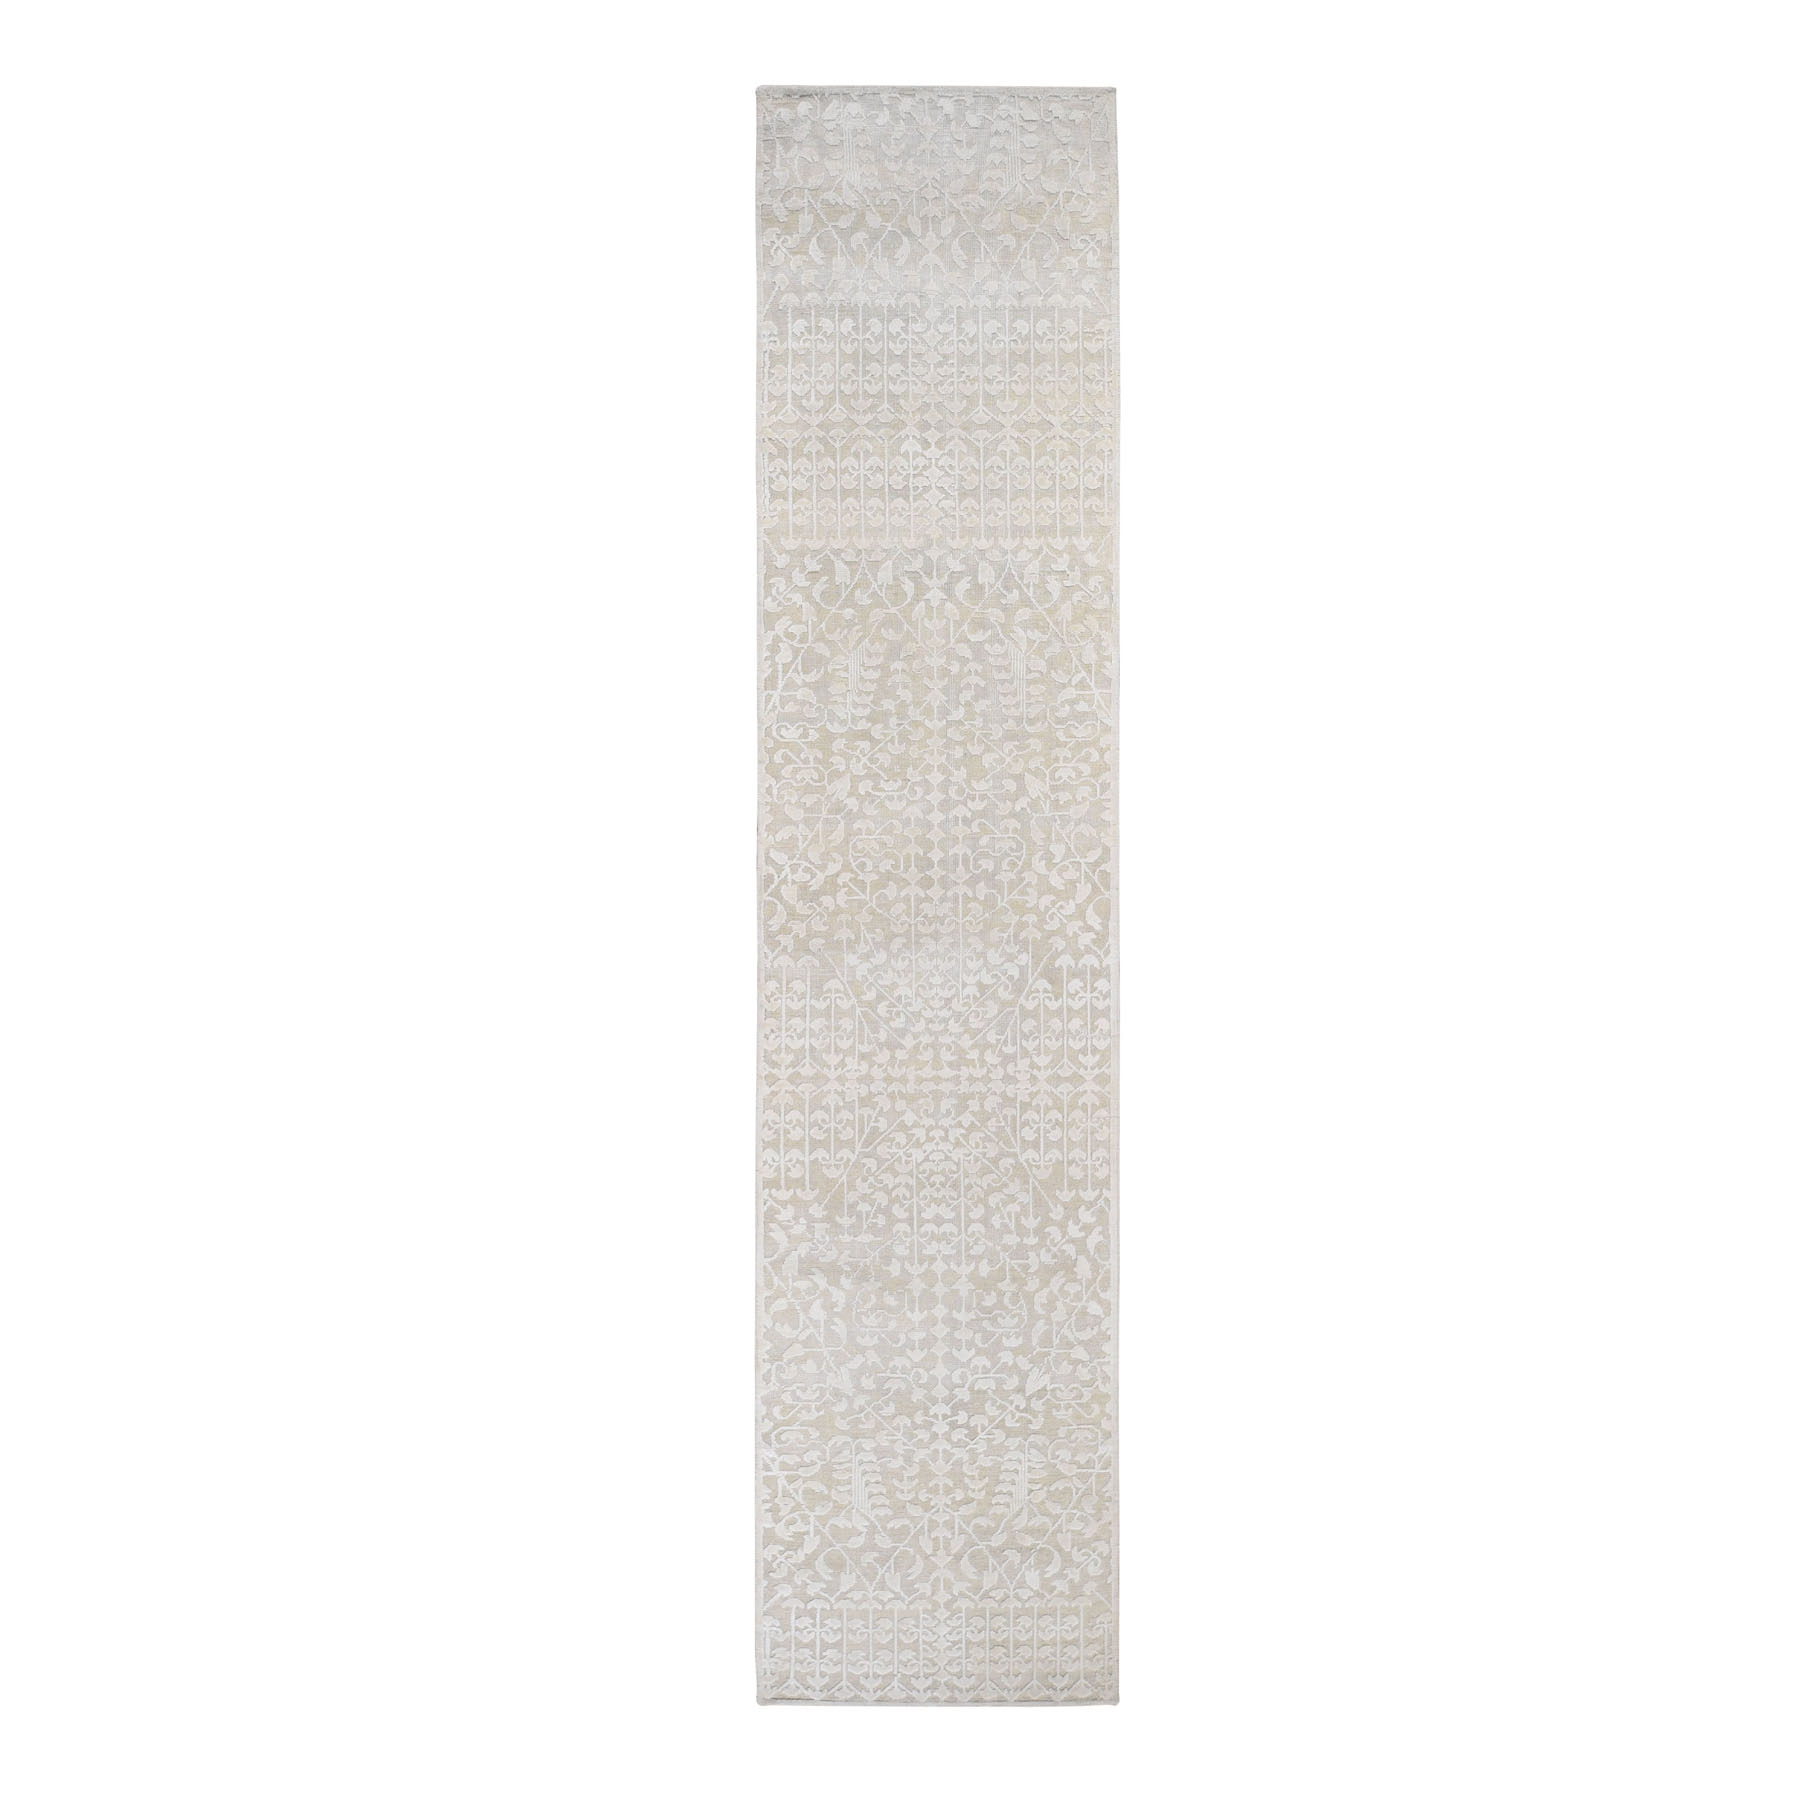 "2'6""x11'8"" Hand knotted Tone on Tone Pure Silk with Textured Wool Runner Oriental Rug"